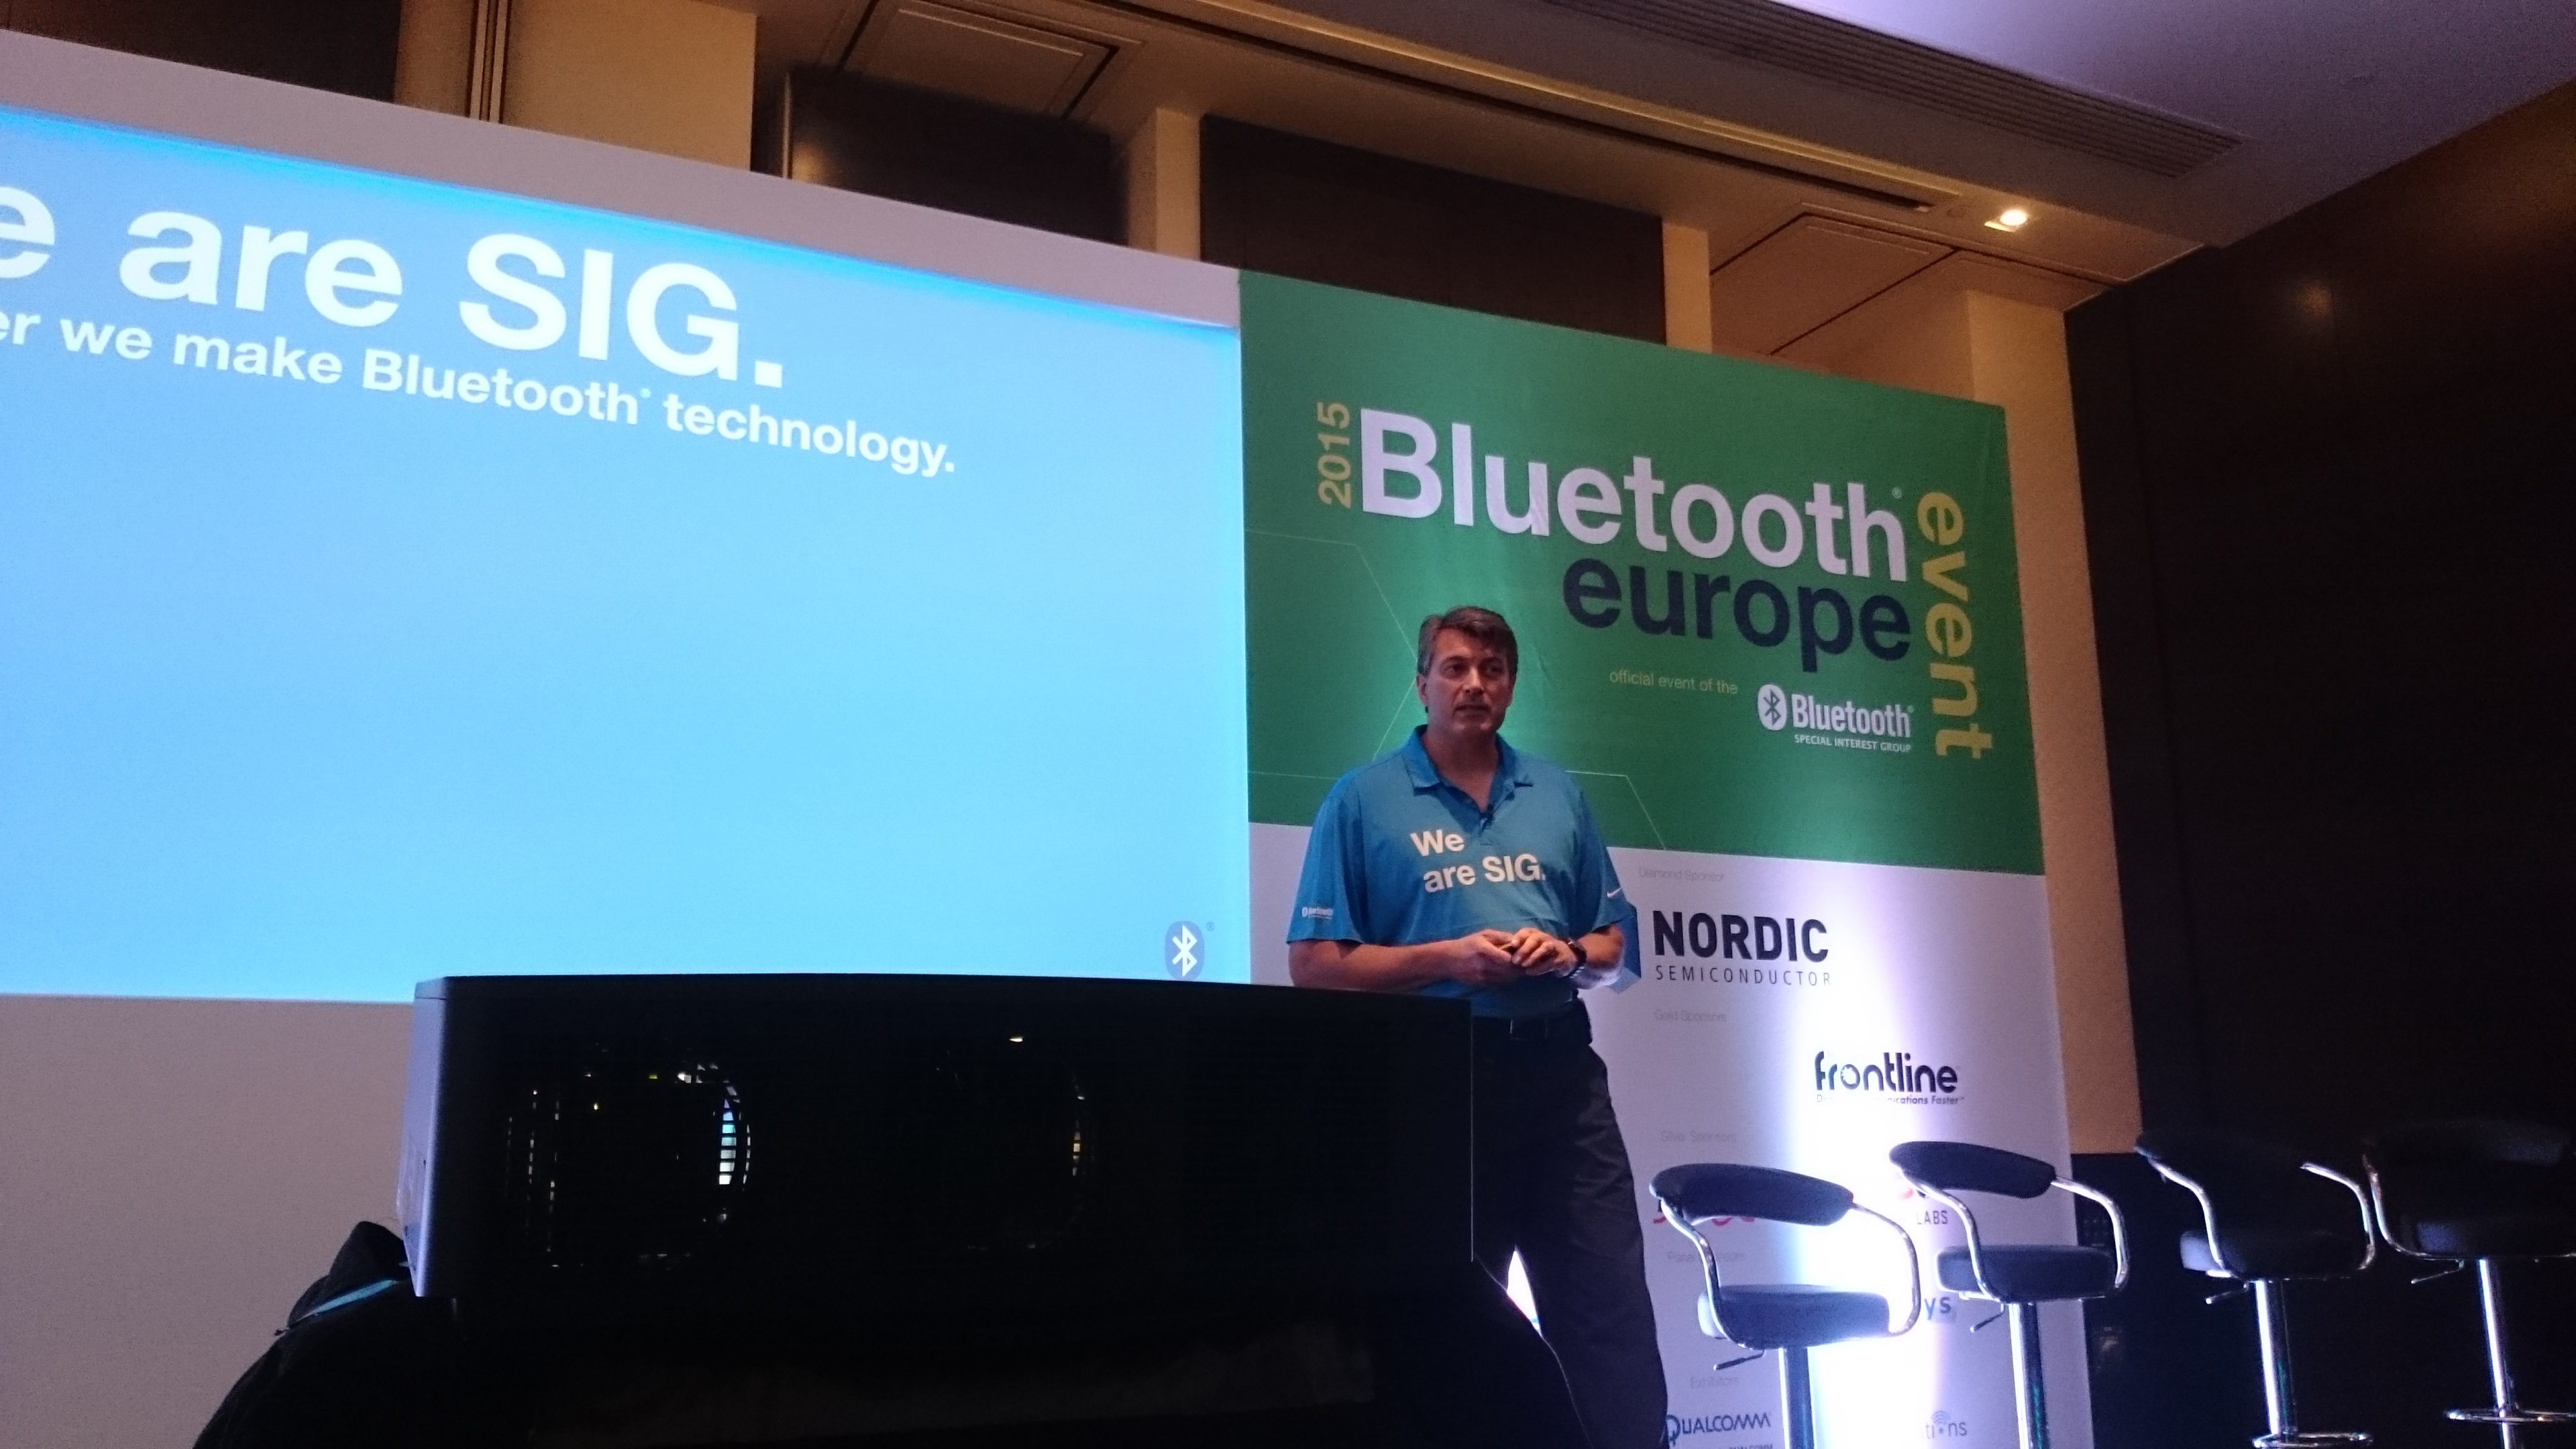 Mark Powell, executive director of the Bluetooth SIG